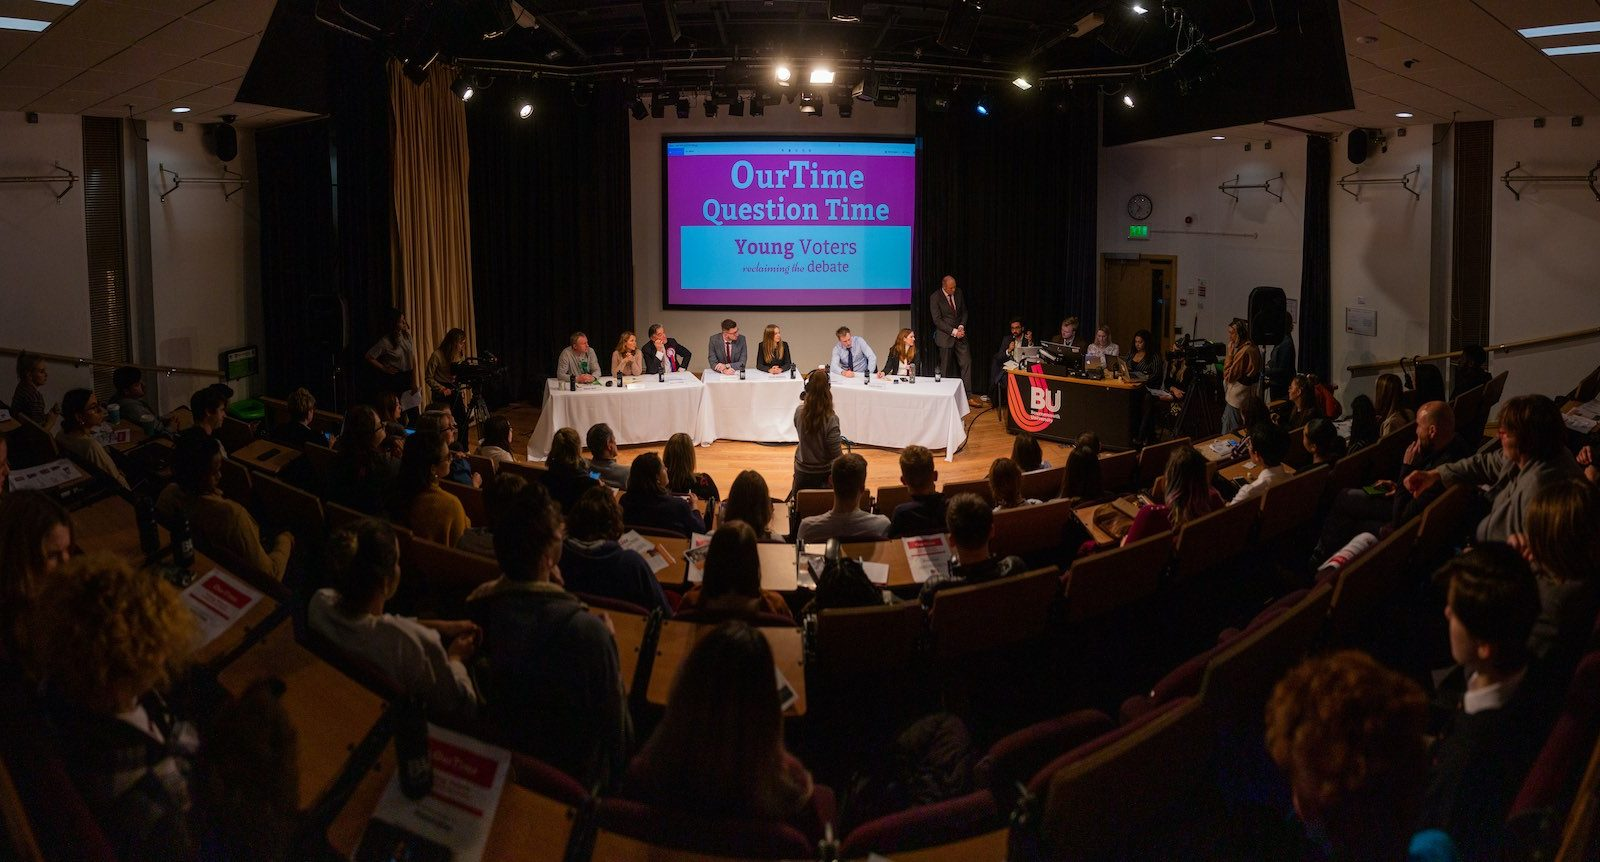 Photo from Bournemouth University's Our Time election debate